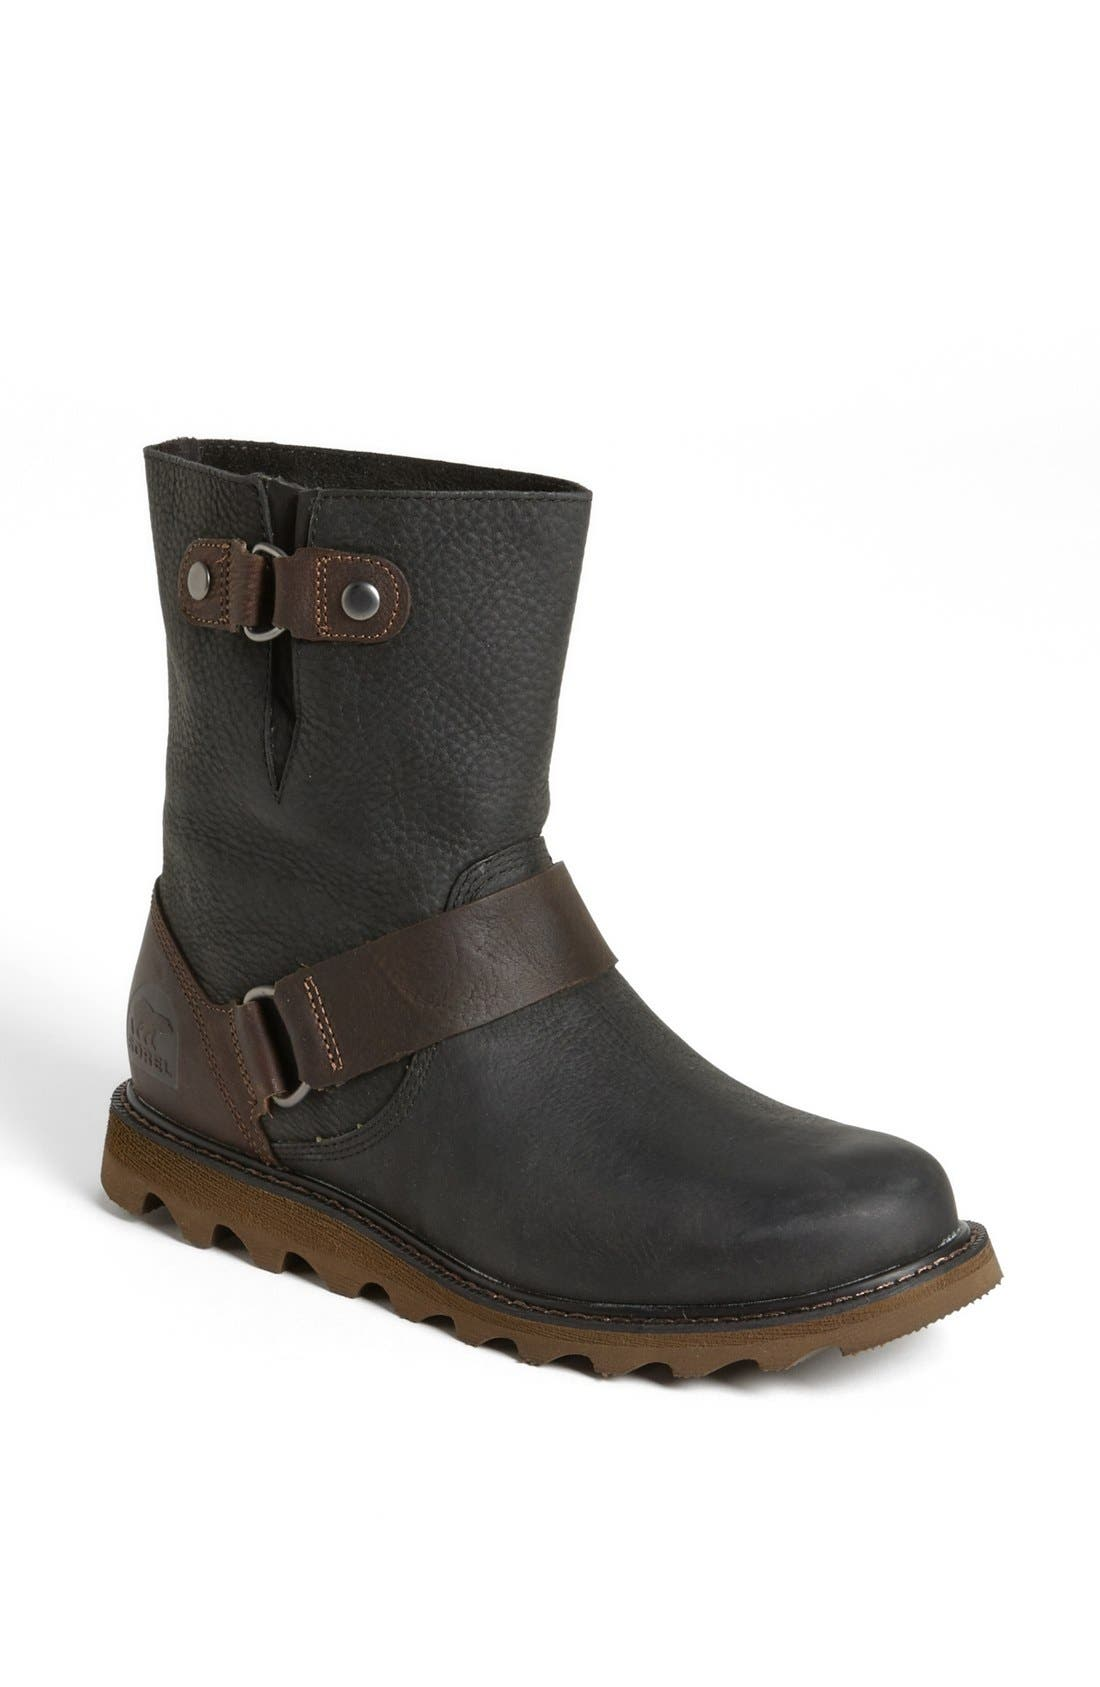 Main Image - SOREL 'Scotia' Waterproof Boot